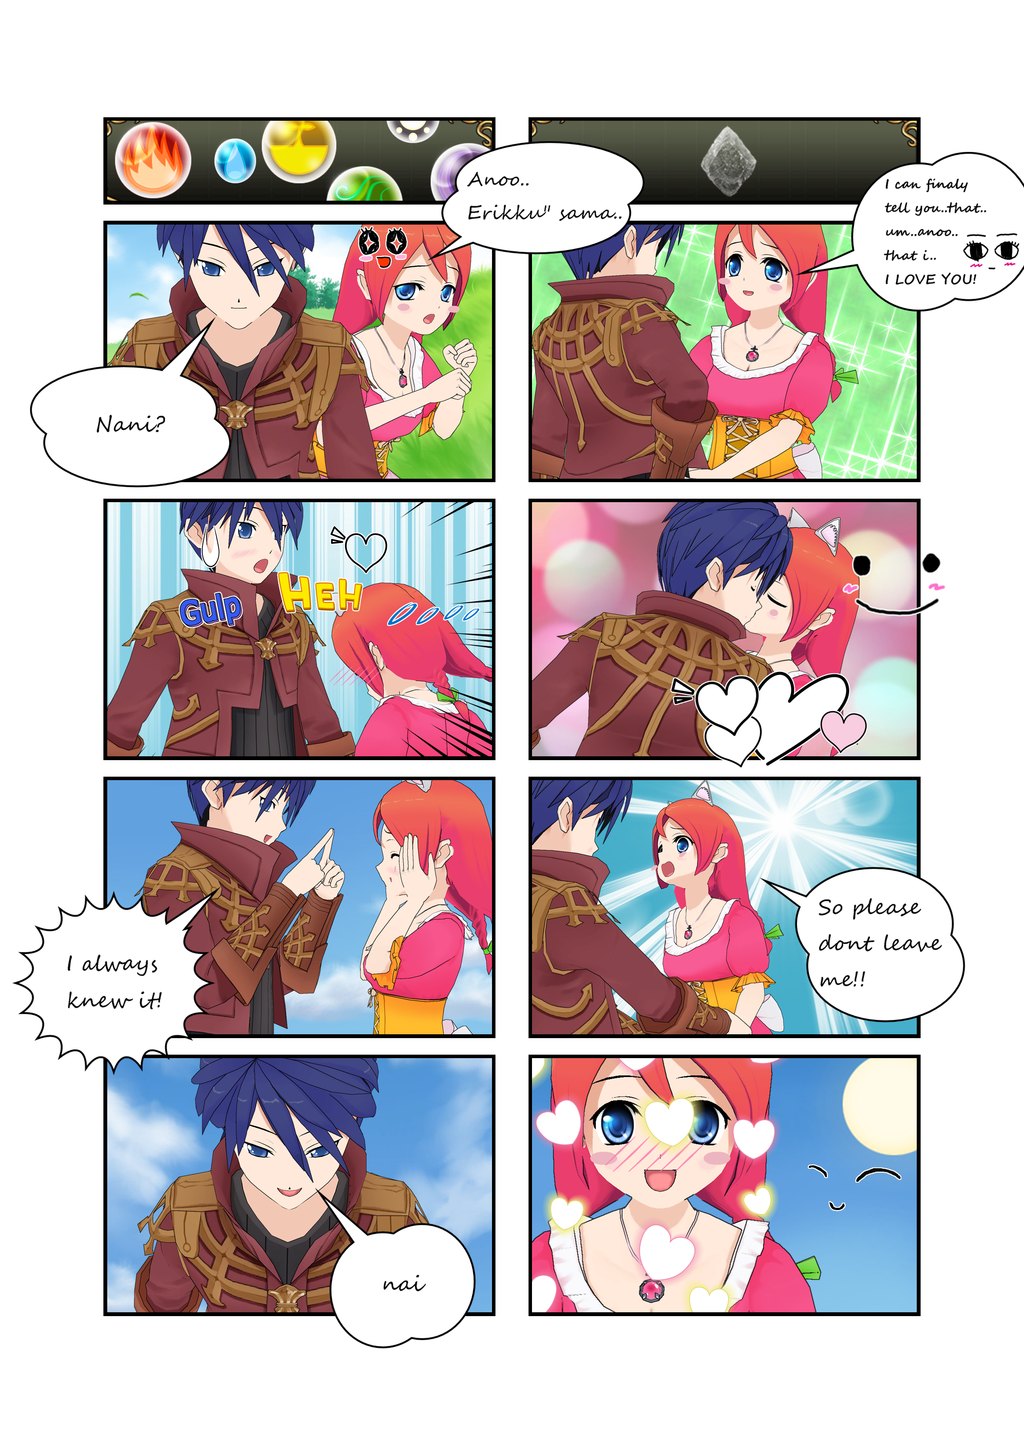 just_a_demo_comic_001_by_fungumars-d8gvz43.png